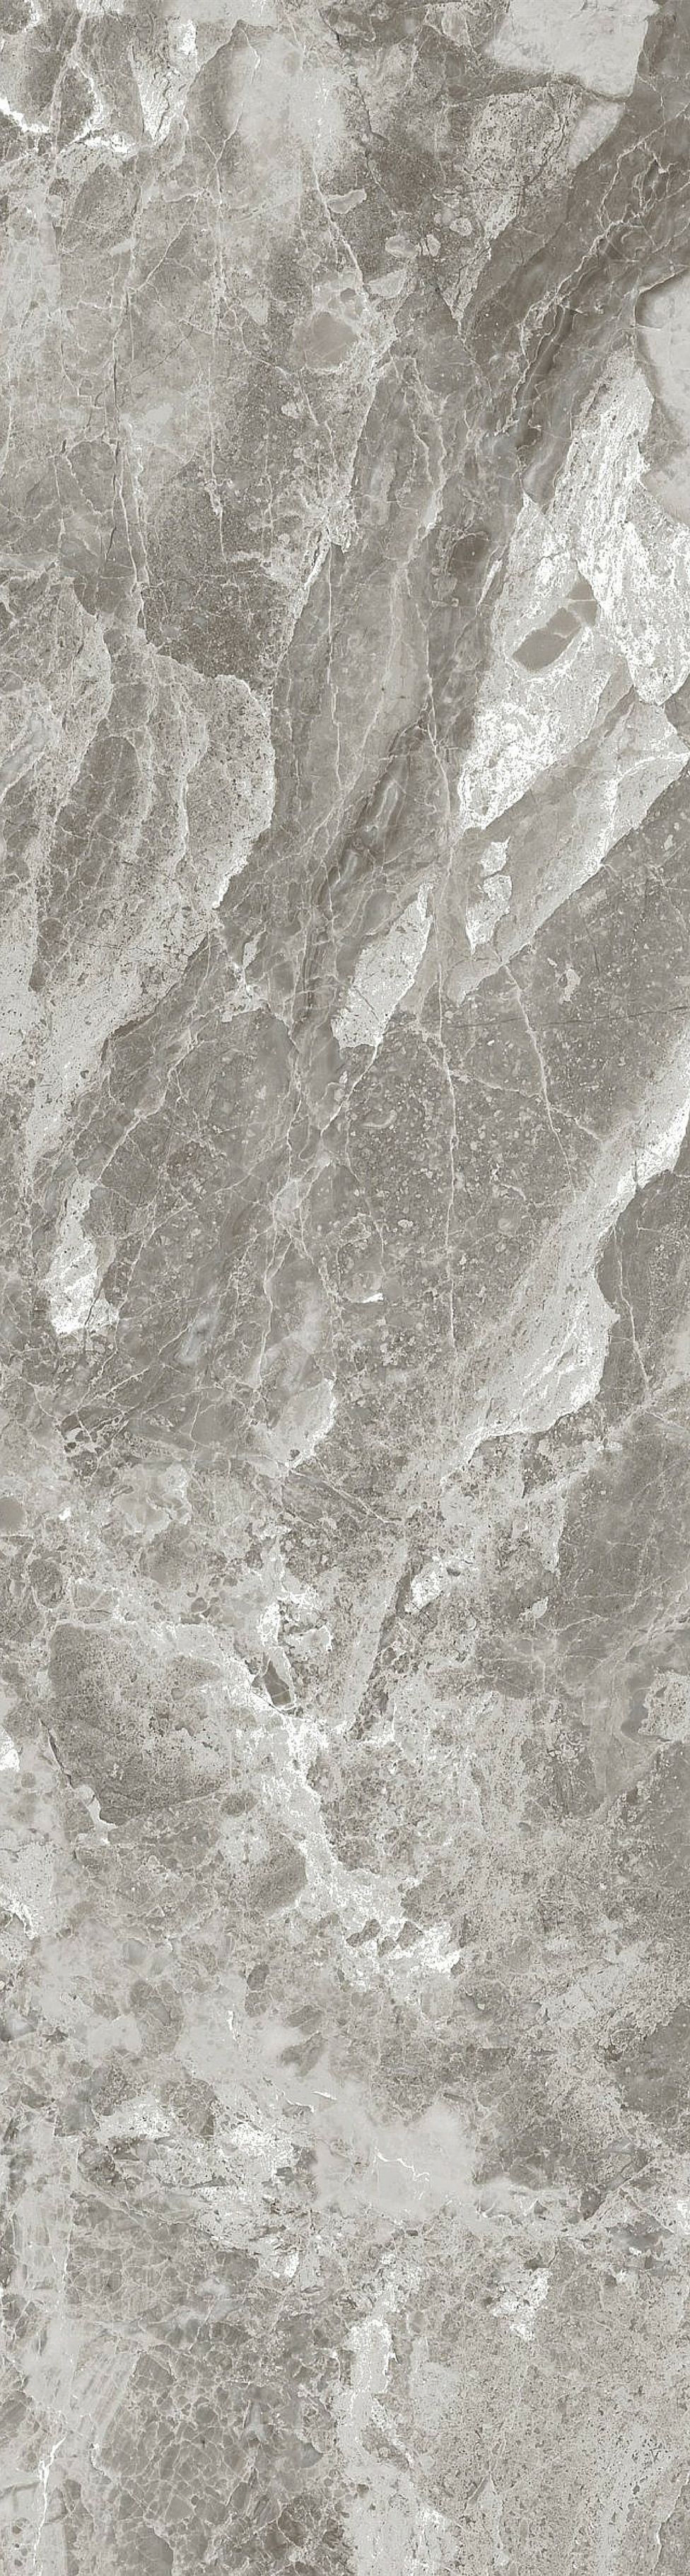 Porcelain Tile Marble Look Classic Bardiglietto Http Www Stonepeakceramics Com Products Php Tiles Texture Texture Stone Texture